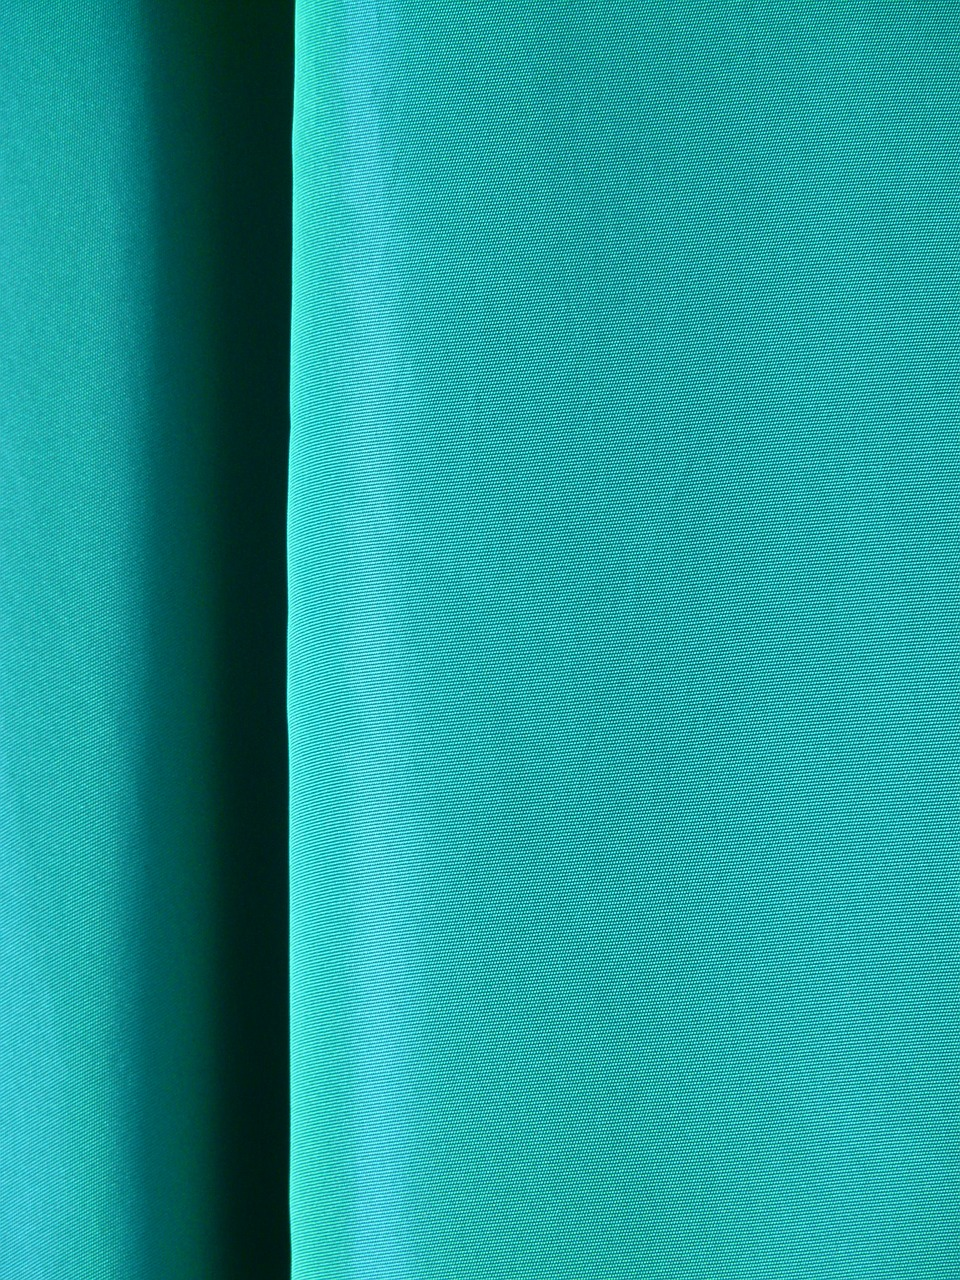 fabric curtain turquoise free photo